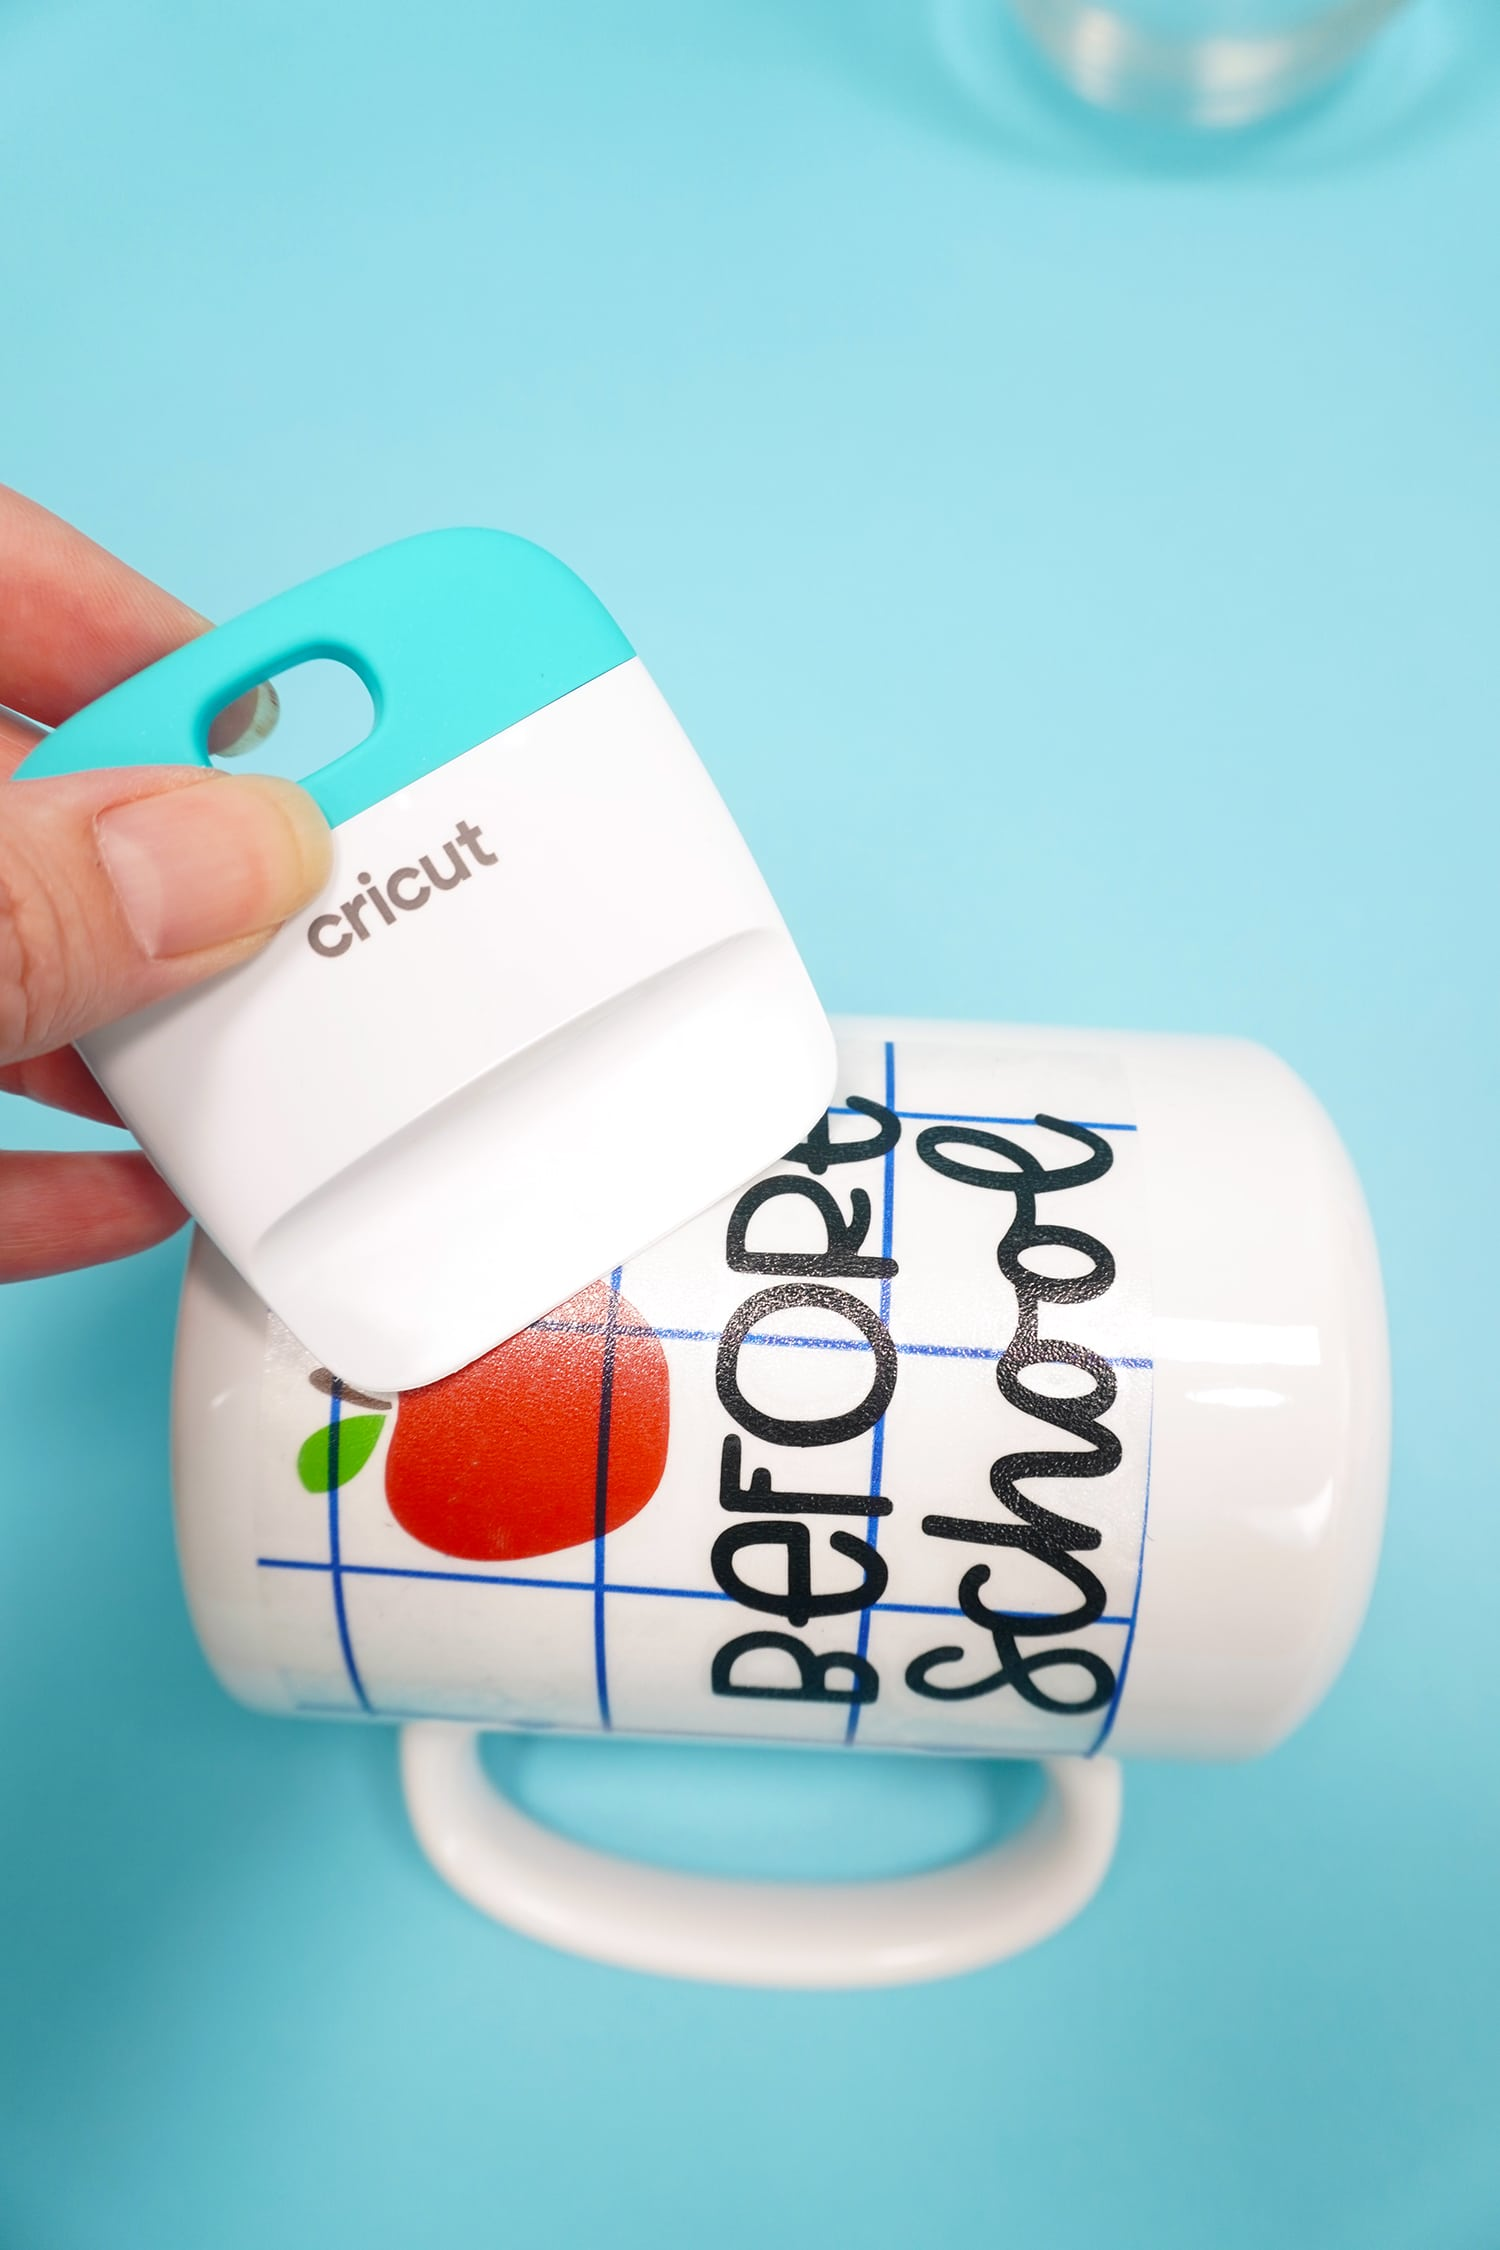 """Using a scraping tool to apply an apple and """"before school"""" design to a white mug"""